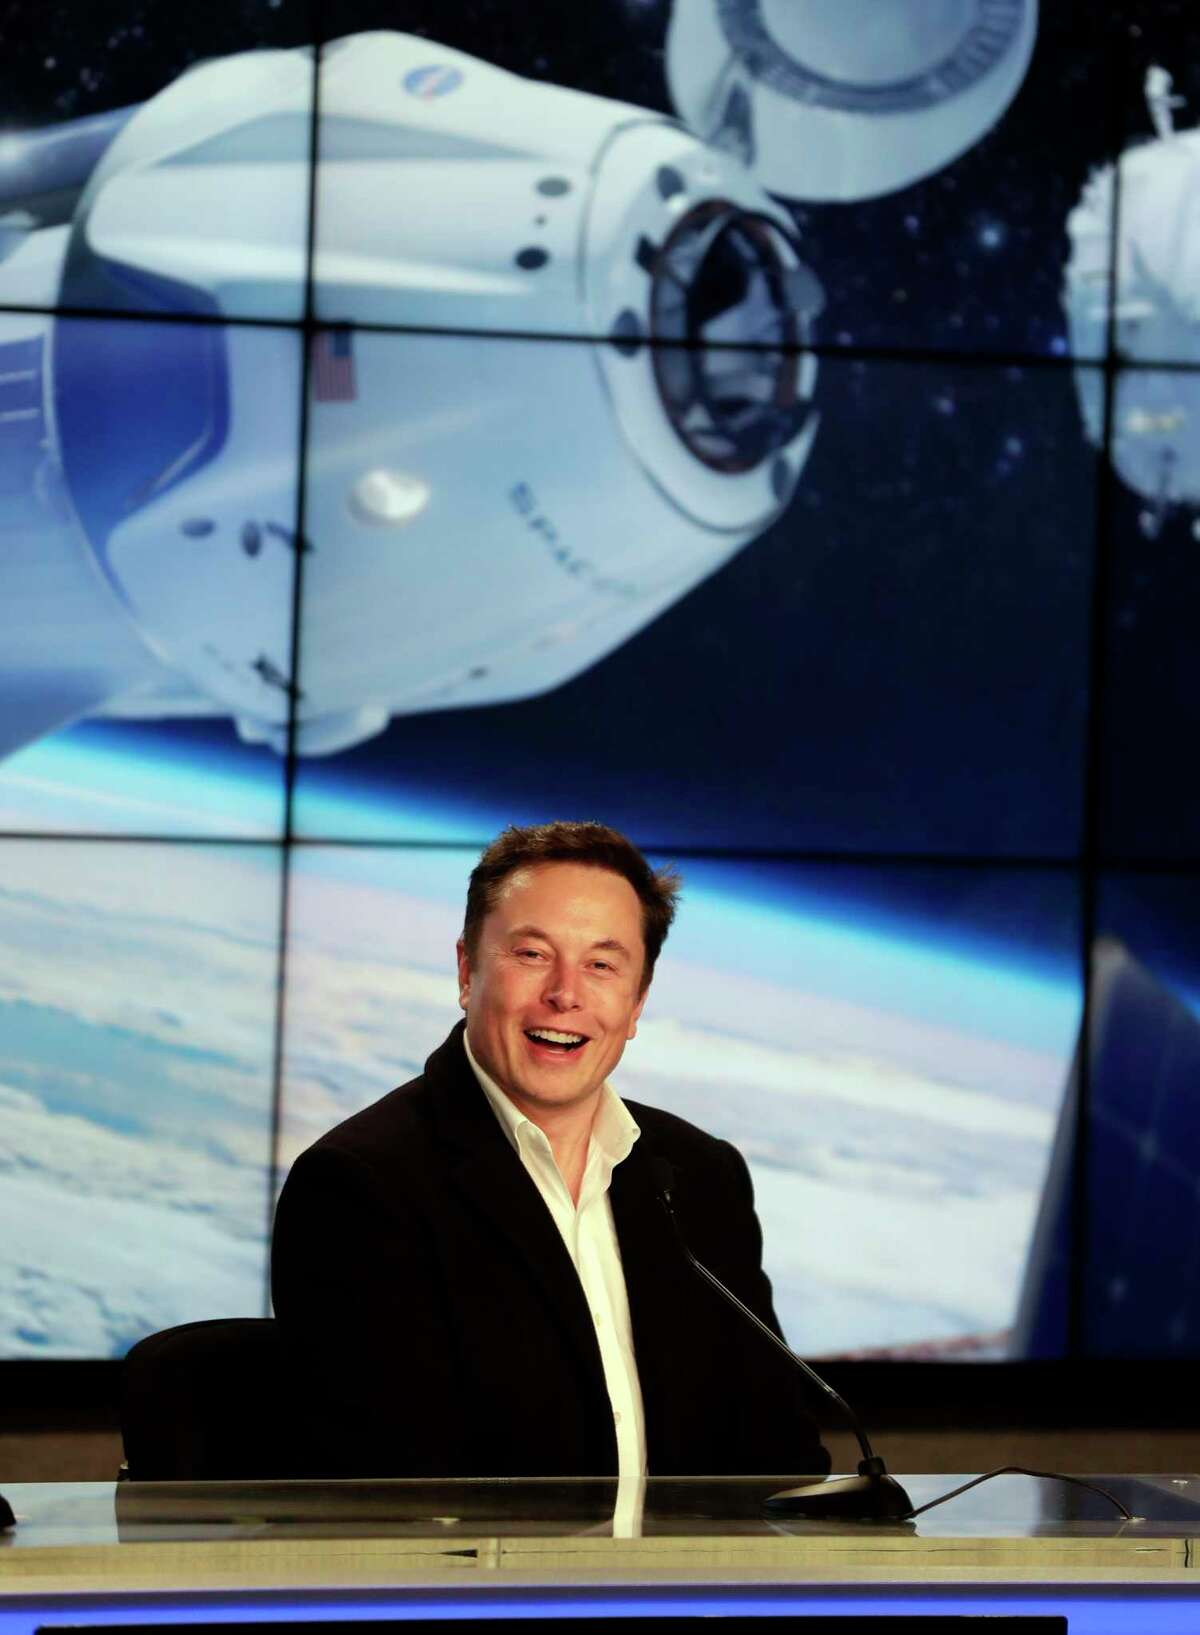 Elon Musk, CEO of SpaceX, speaks during a news conference after the SpaceX Falcon 9 Demo-1 launch at the Kennedy Space Center in Cape Canaveral, Fla., Saturday, March 2, 2019.